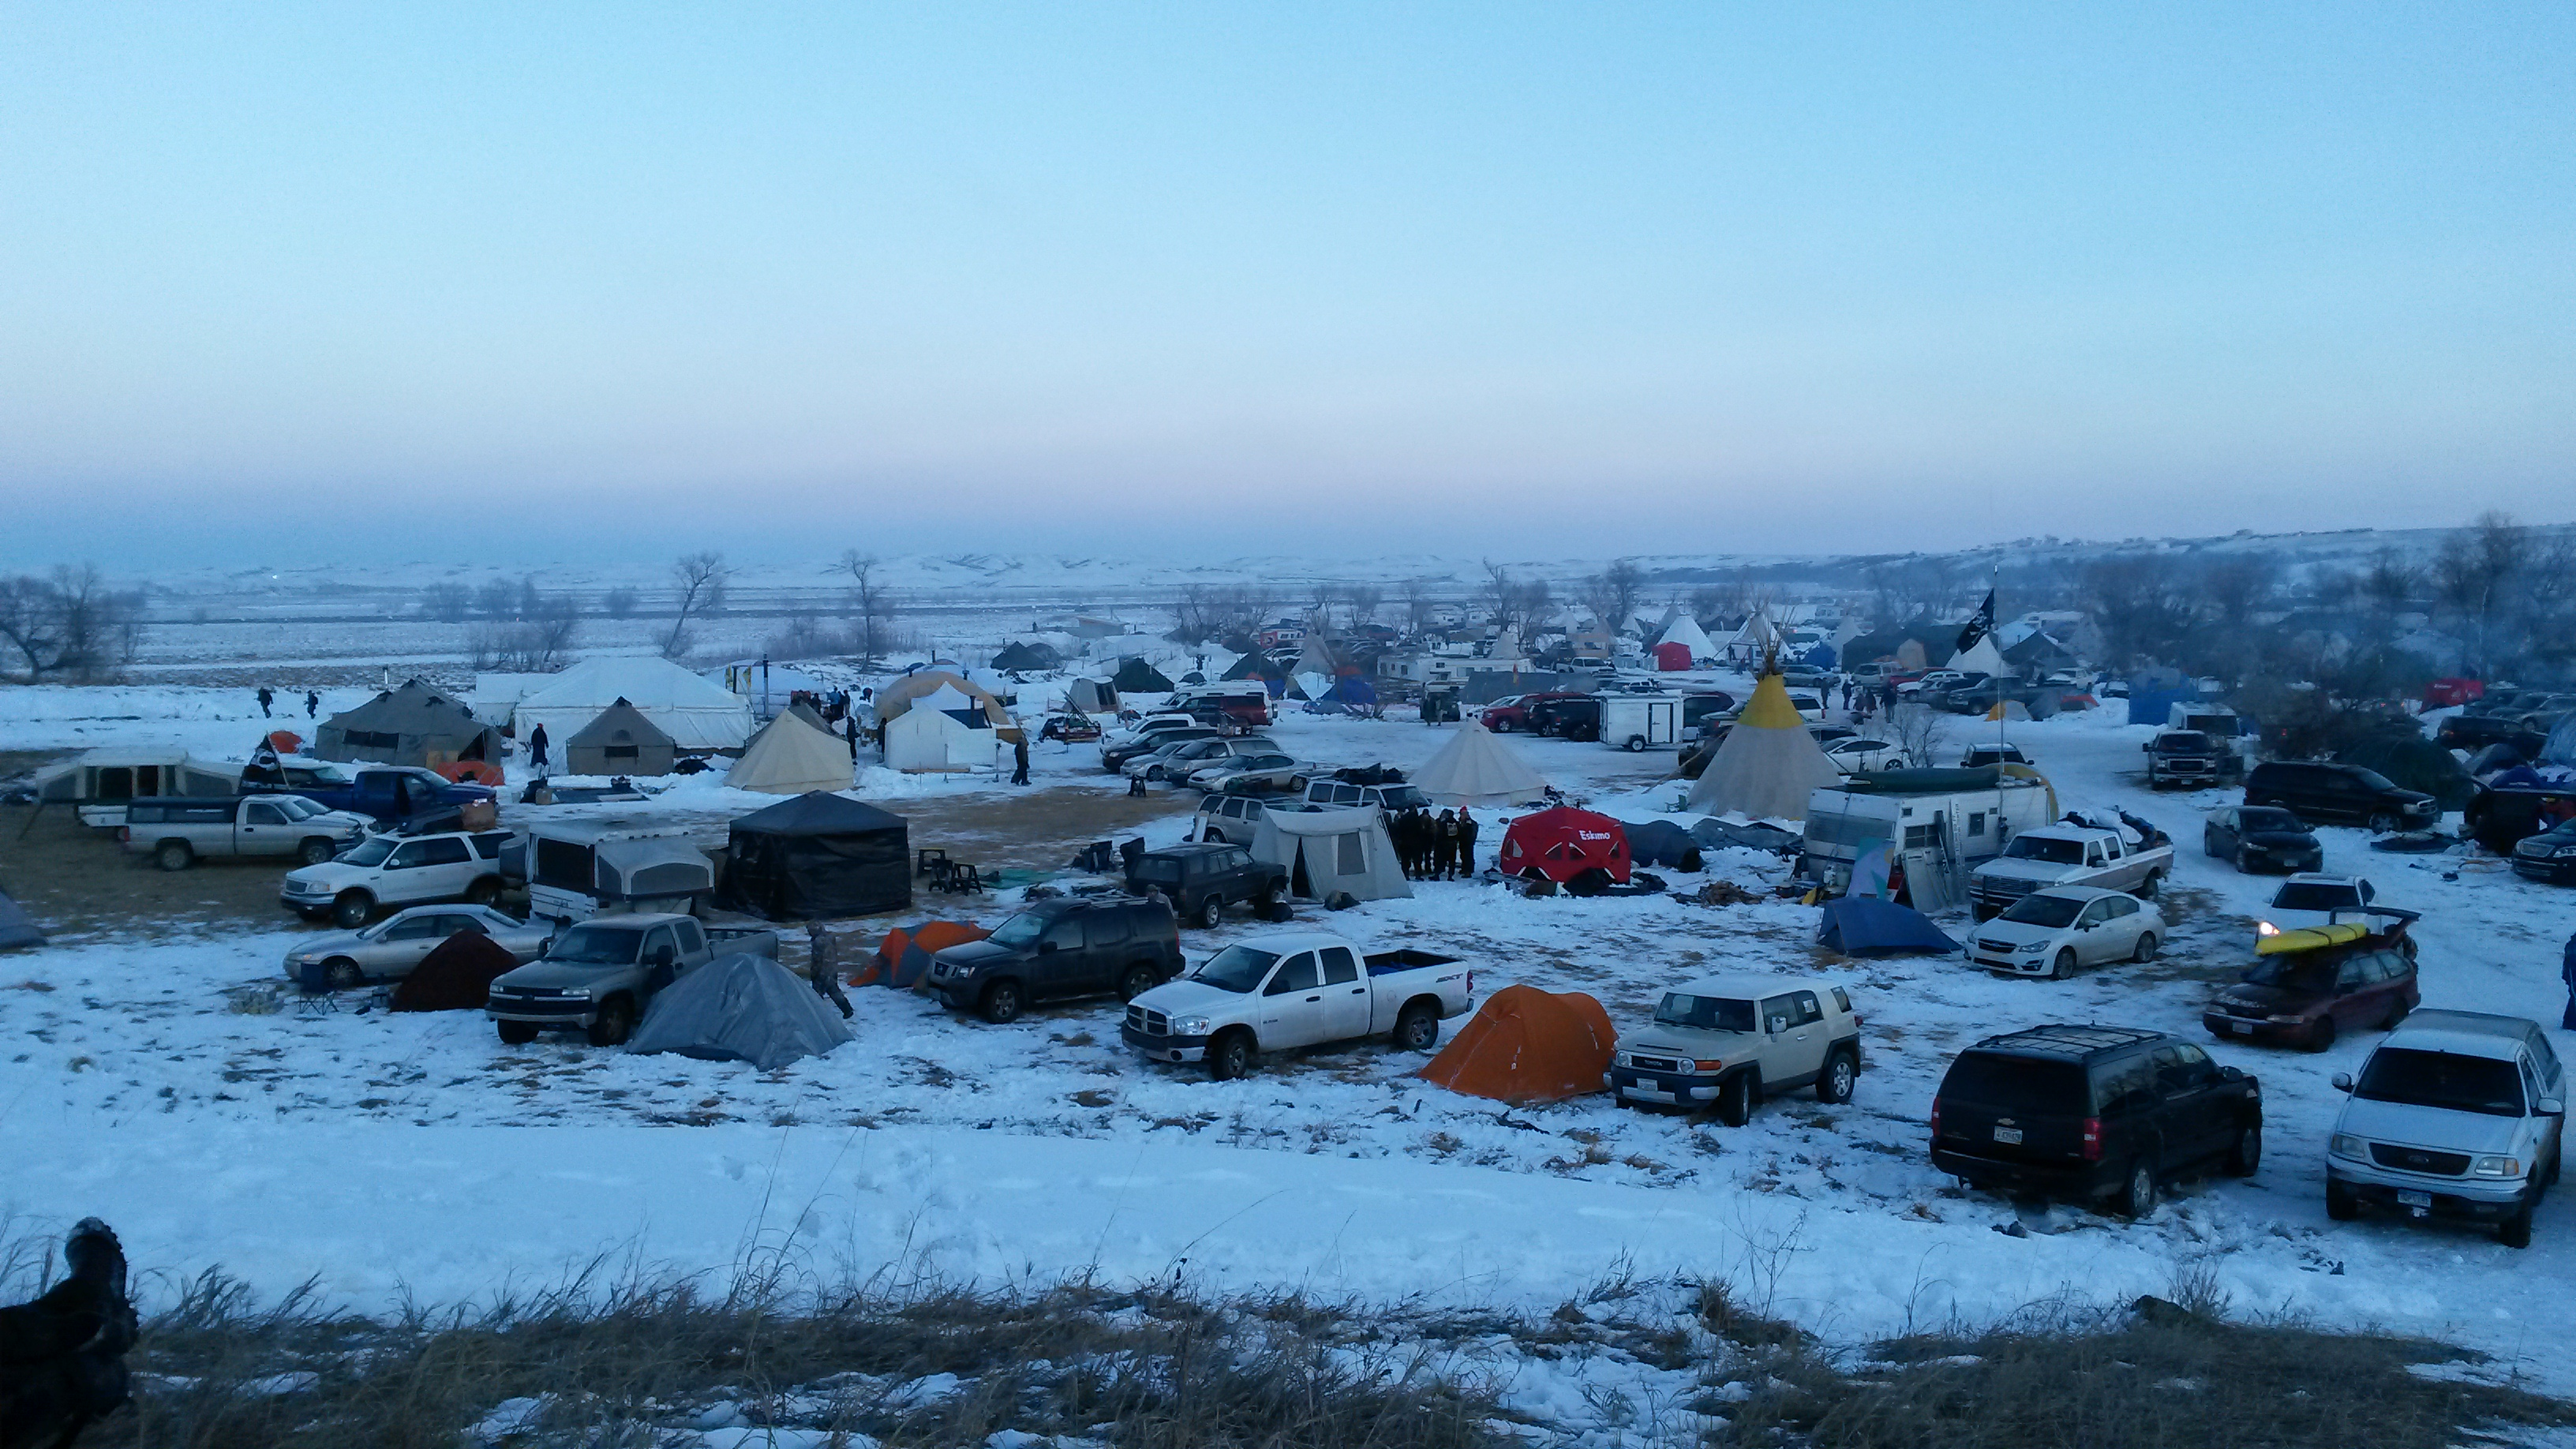 a tiny part of the camp